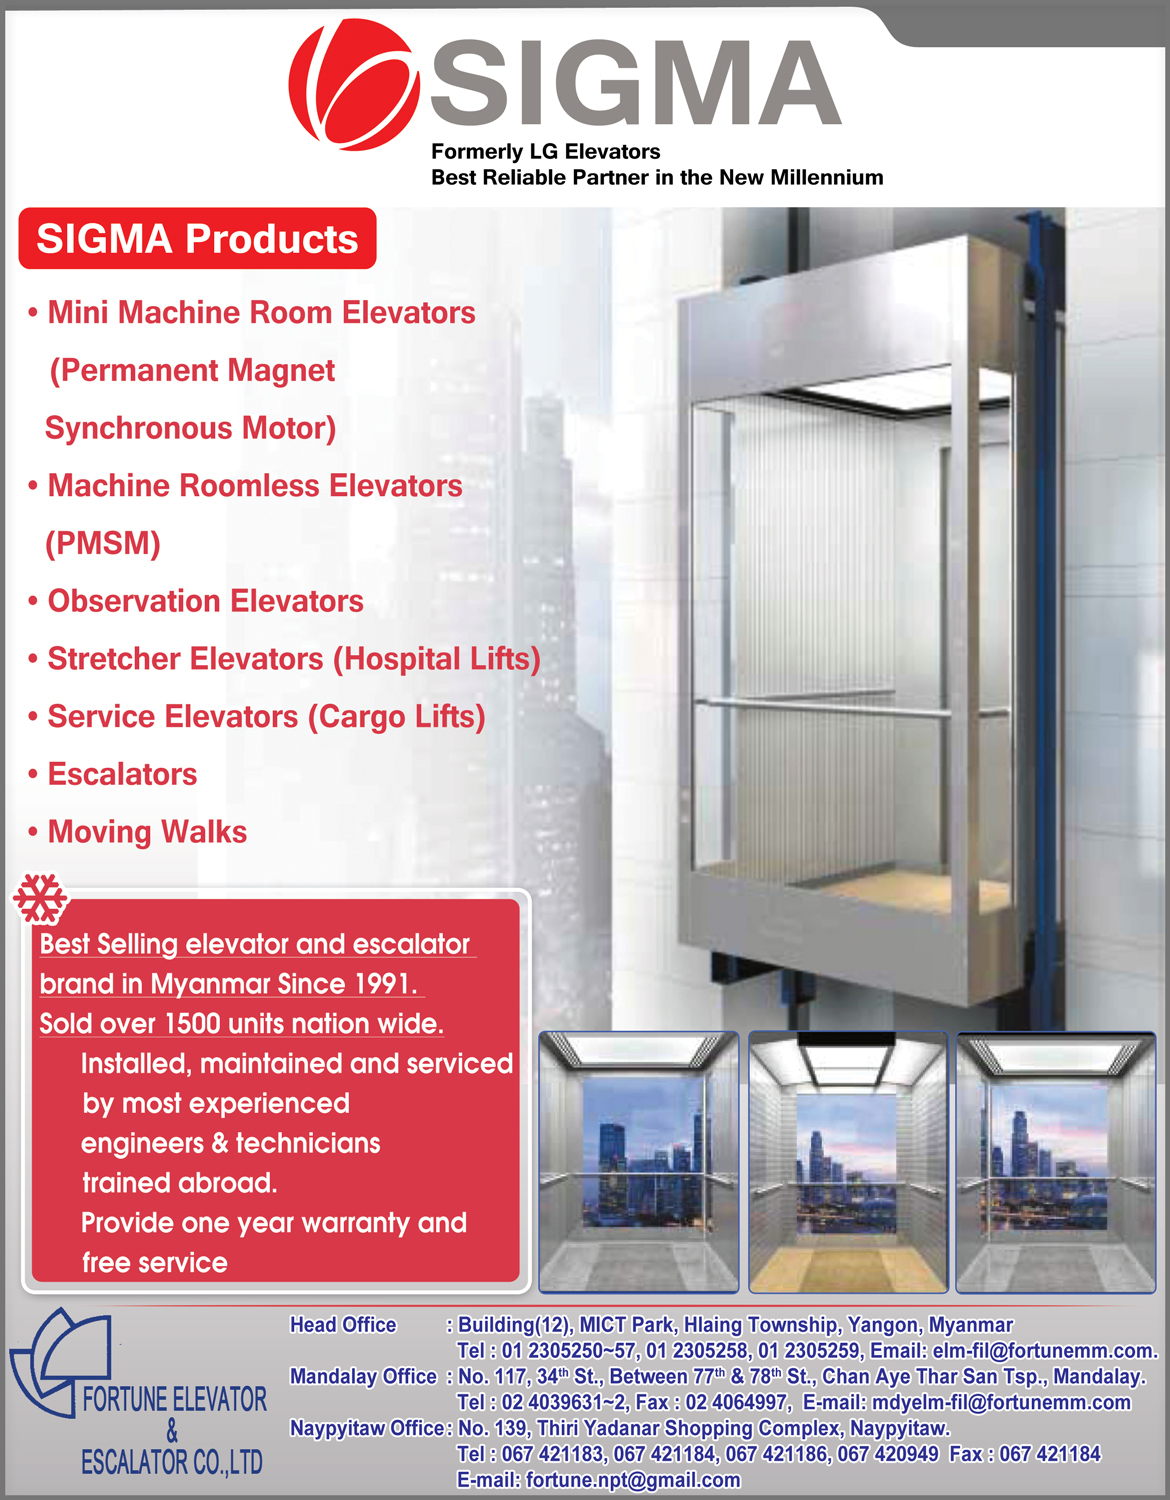 Directory - Category Lists of Building Services - Myanmar Builders Guide